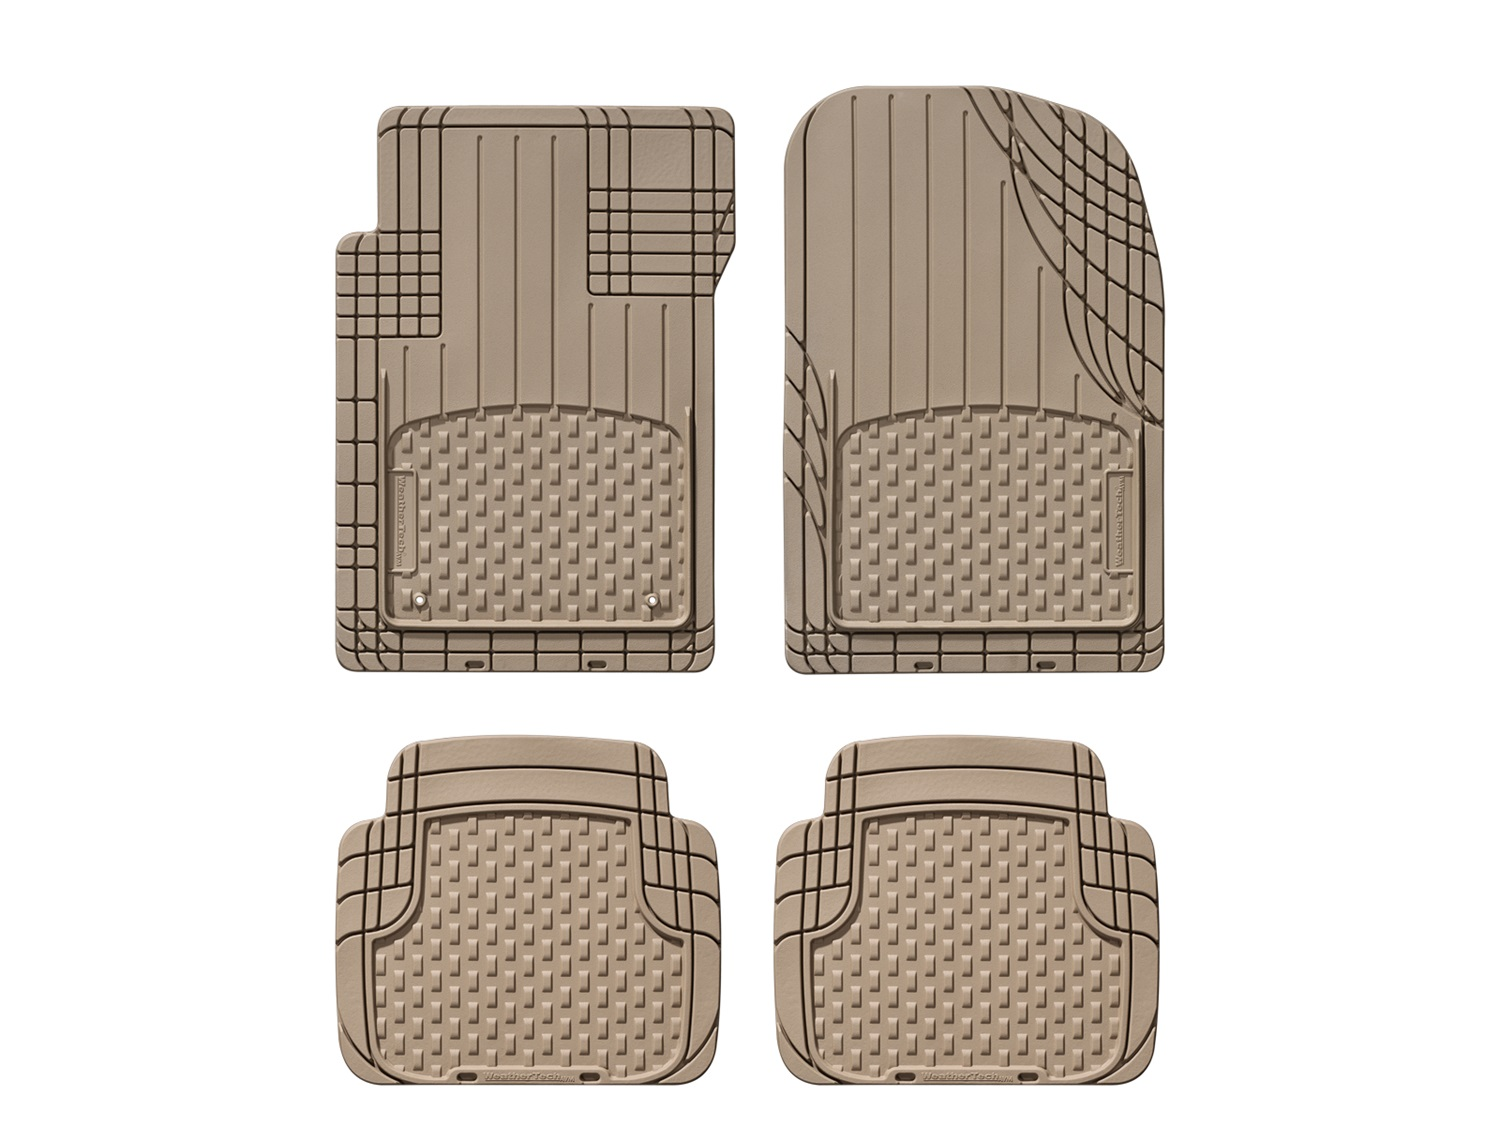 Universal All Vehicle Mat, Tan, Front and 2nd Row, 2nd Row 1 pc. Over The Hump